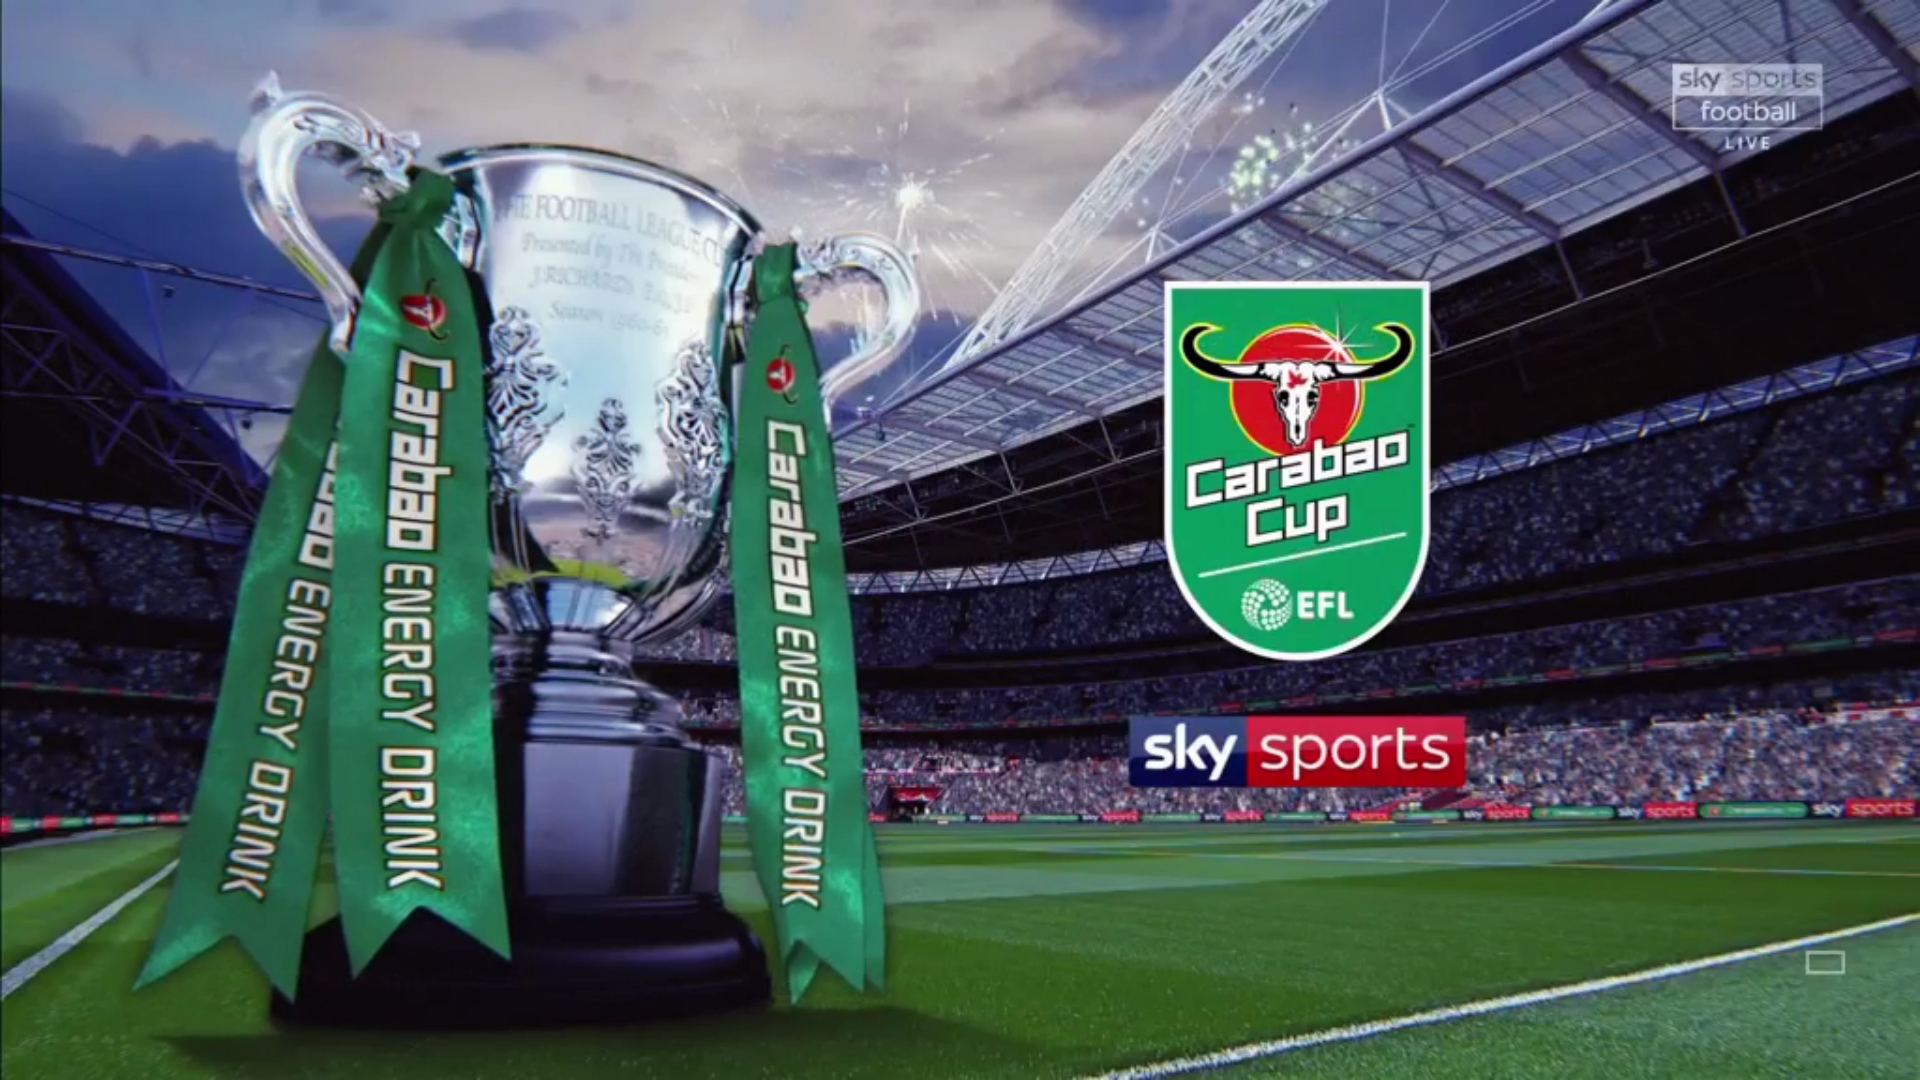 Manchester United v Derby County – Carabao Cup 2018 – Live TV Coverage on Sky Sports